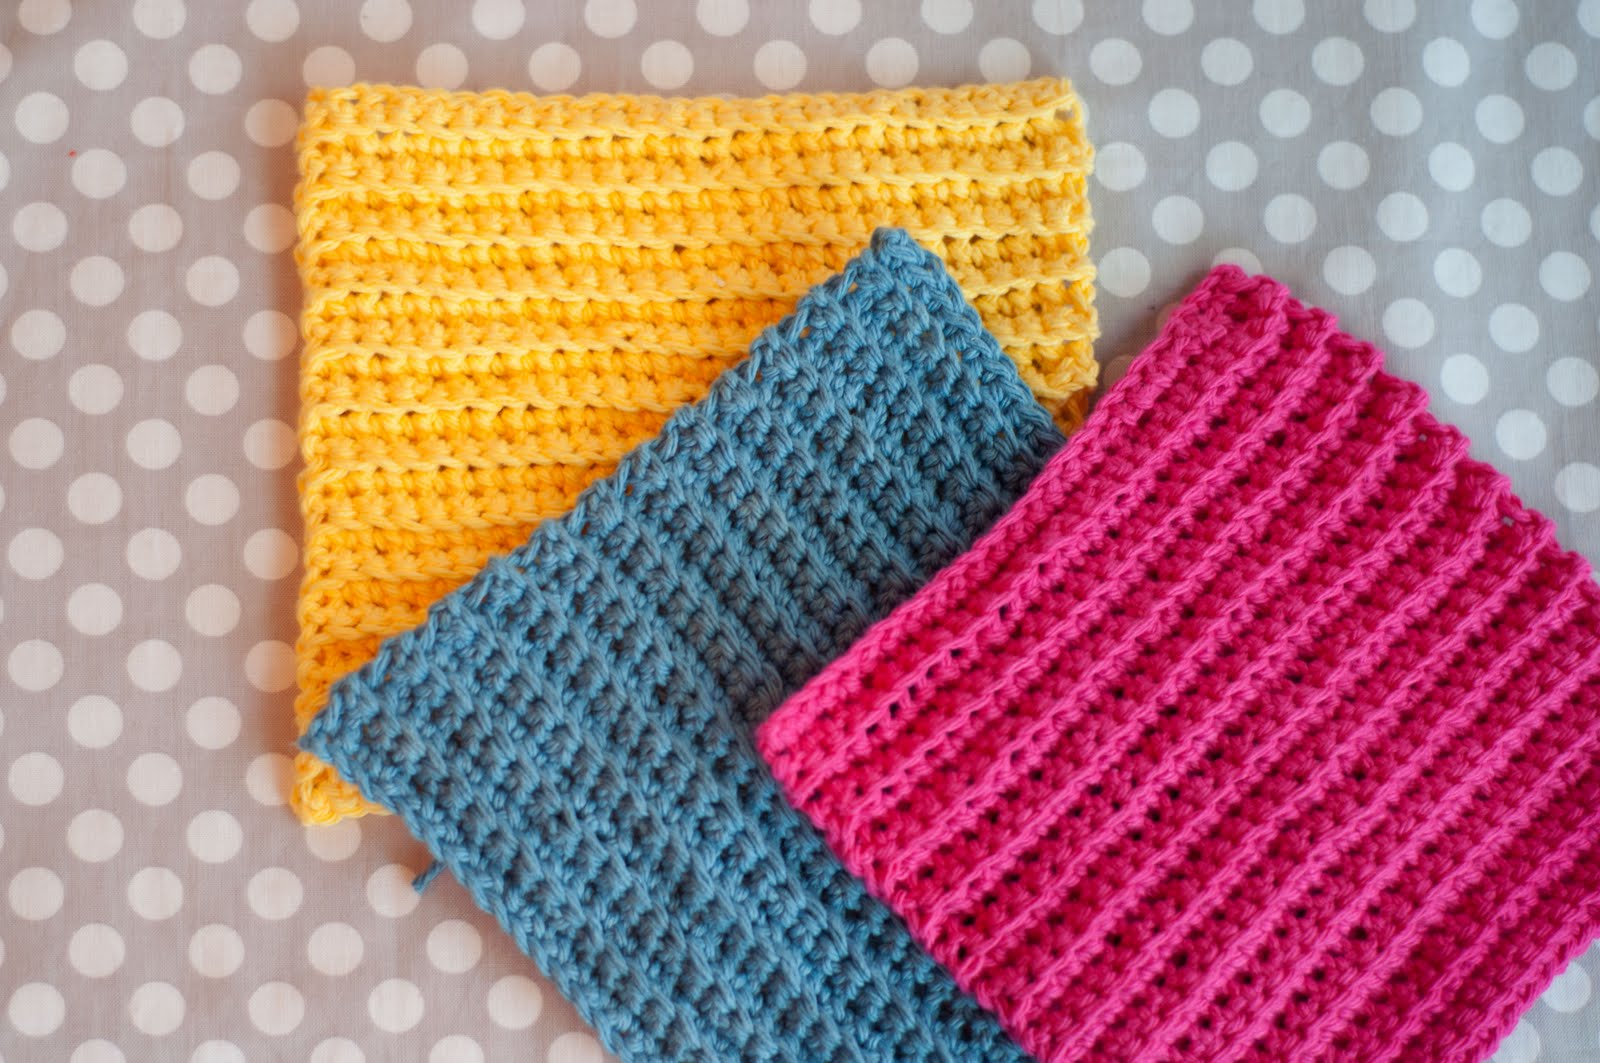 Crochet Basics : learn crochet beginner basics and instructions